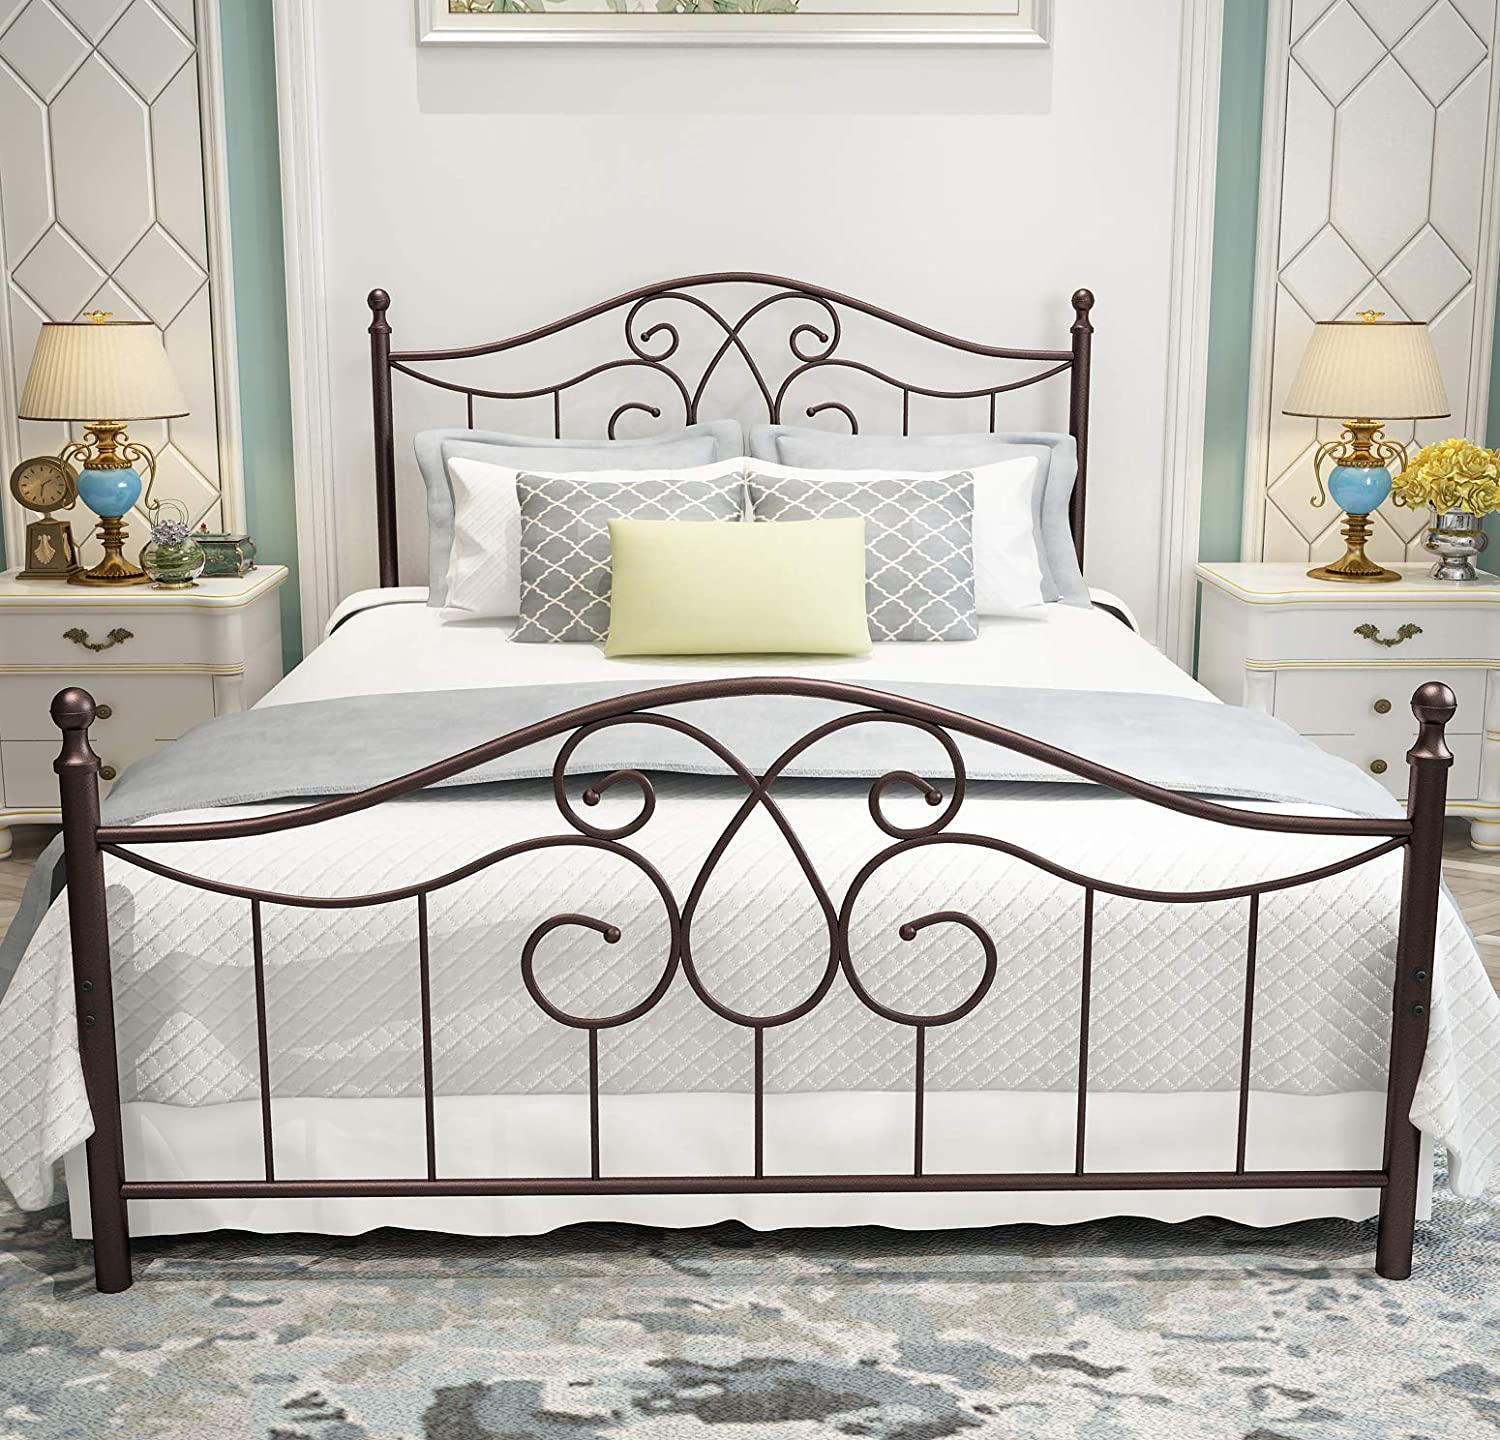 Vintage Sturdy Metal Bed Frame Queen Size with Vintage Headboard and Footboard Platform Base Bed Frame No Box Spring Needed Steel Bed Antique Brown Queen.